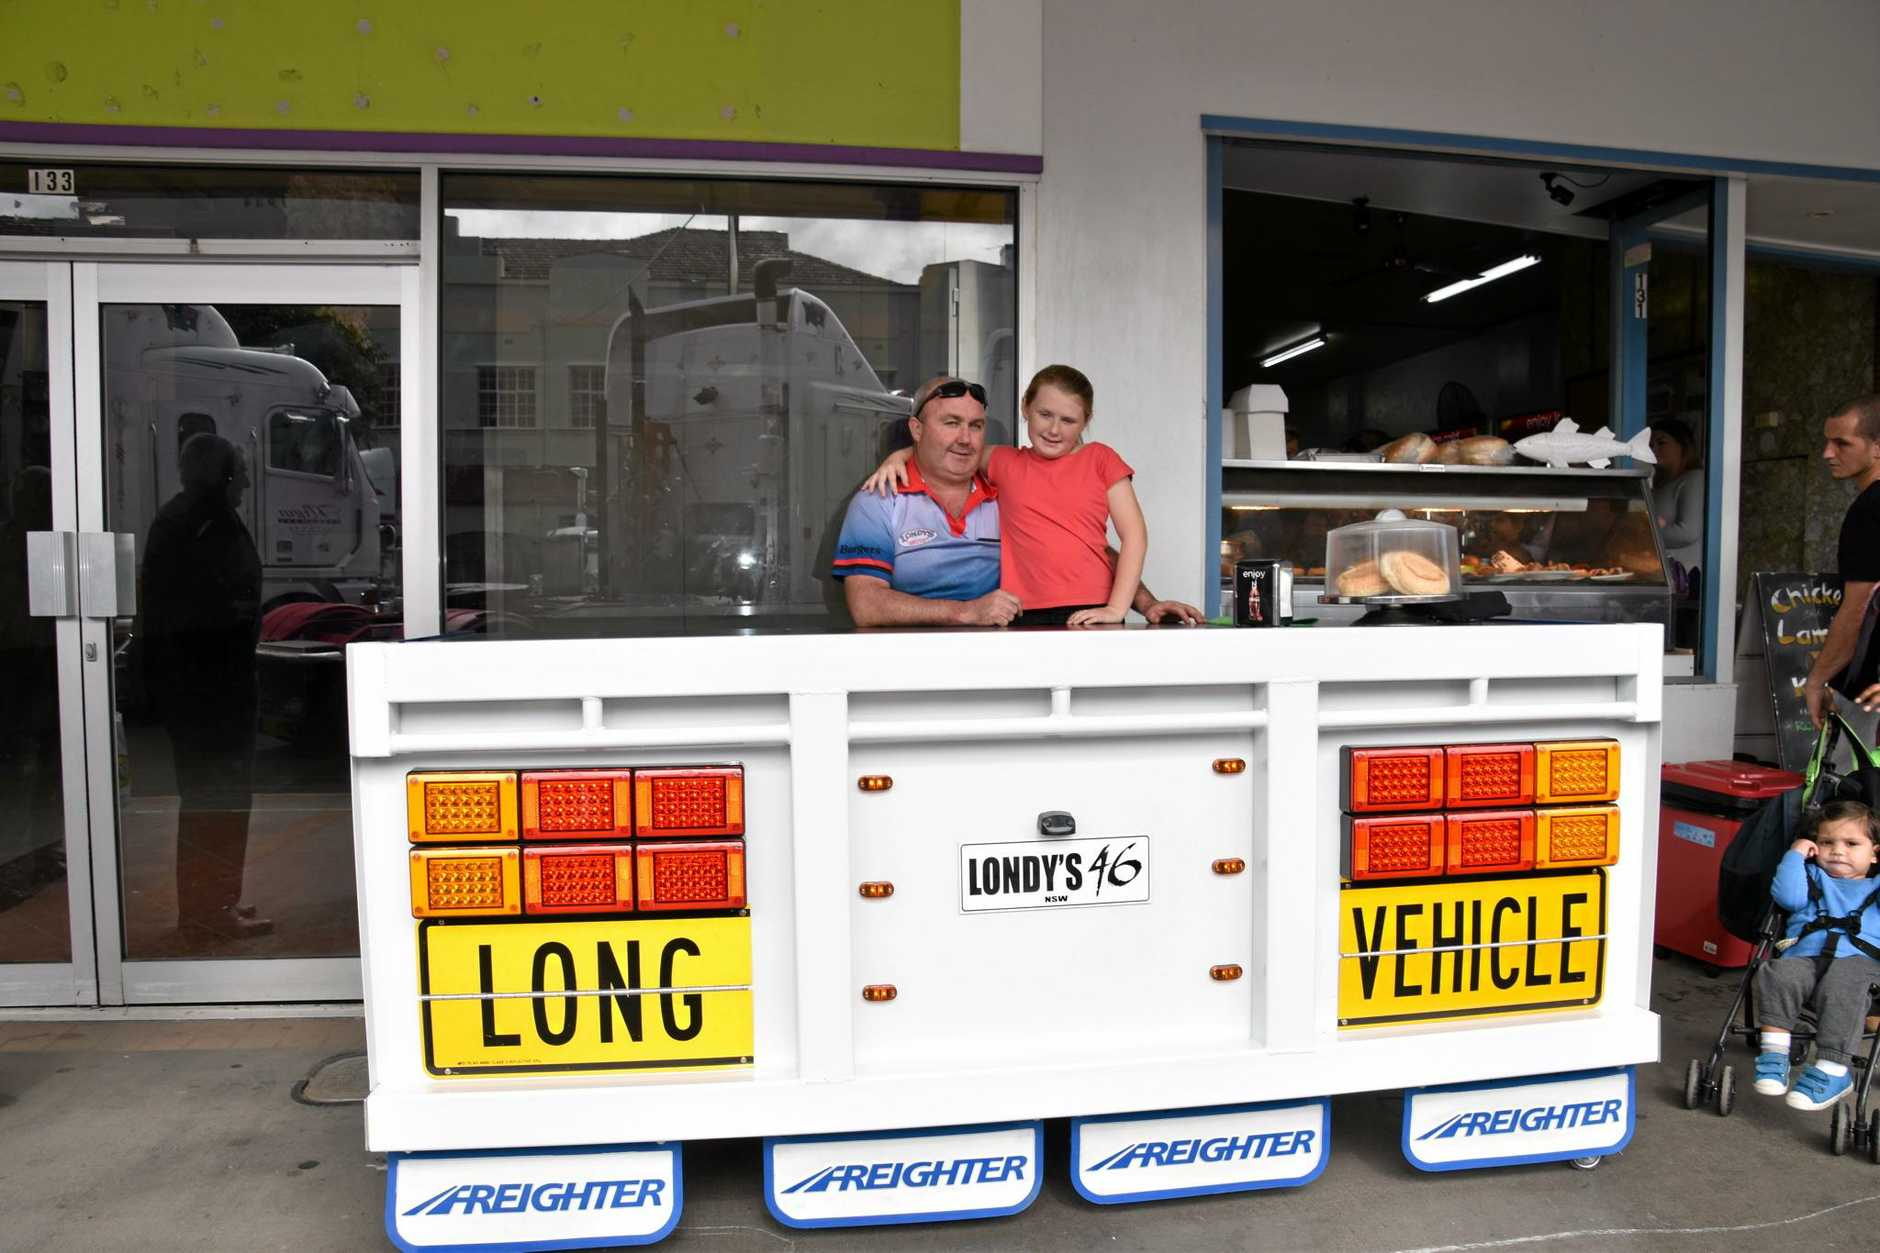 Local Casino business Londy's got into the spirit of the Casino Truck Show with this truck rear end table. Jason O'Reilly and daughter Eliza, 9 sit and enjoy the day.